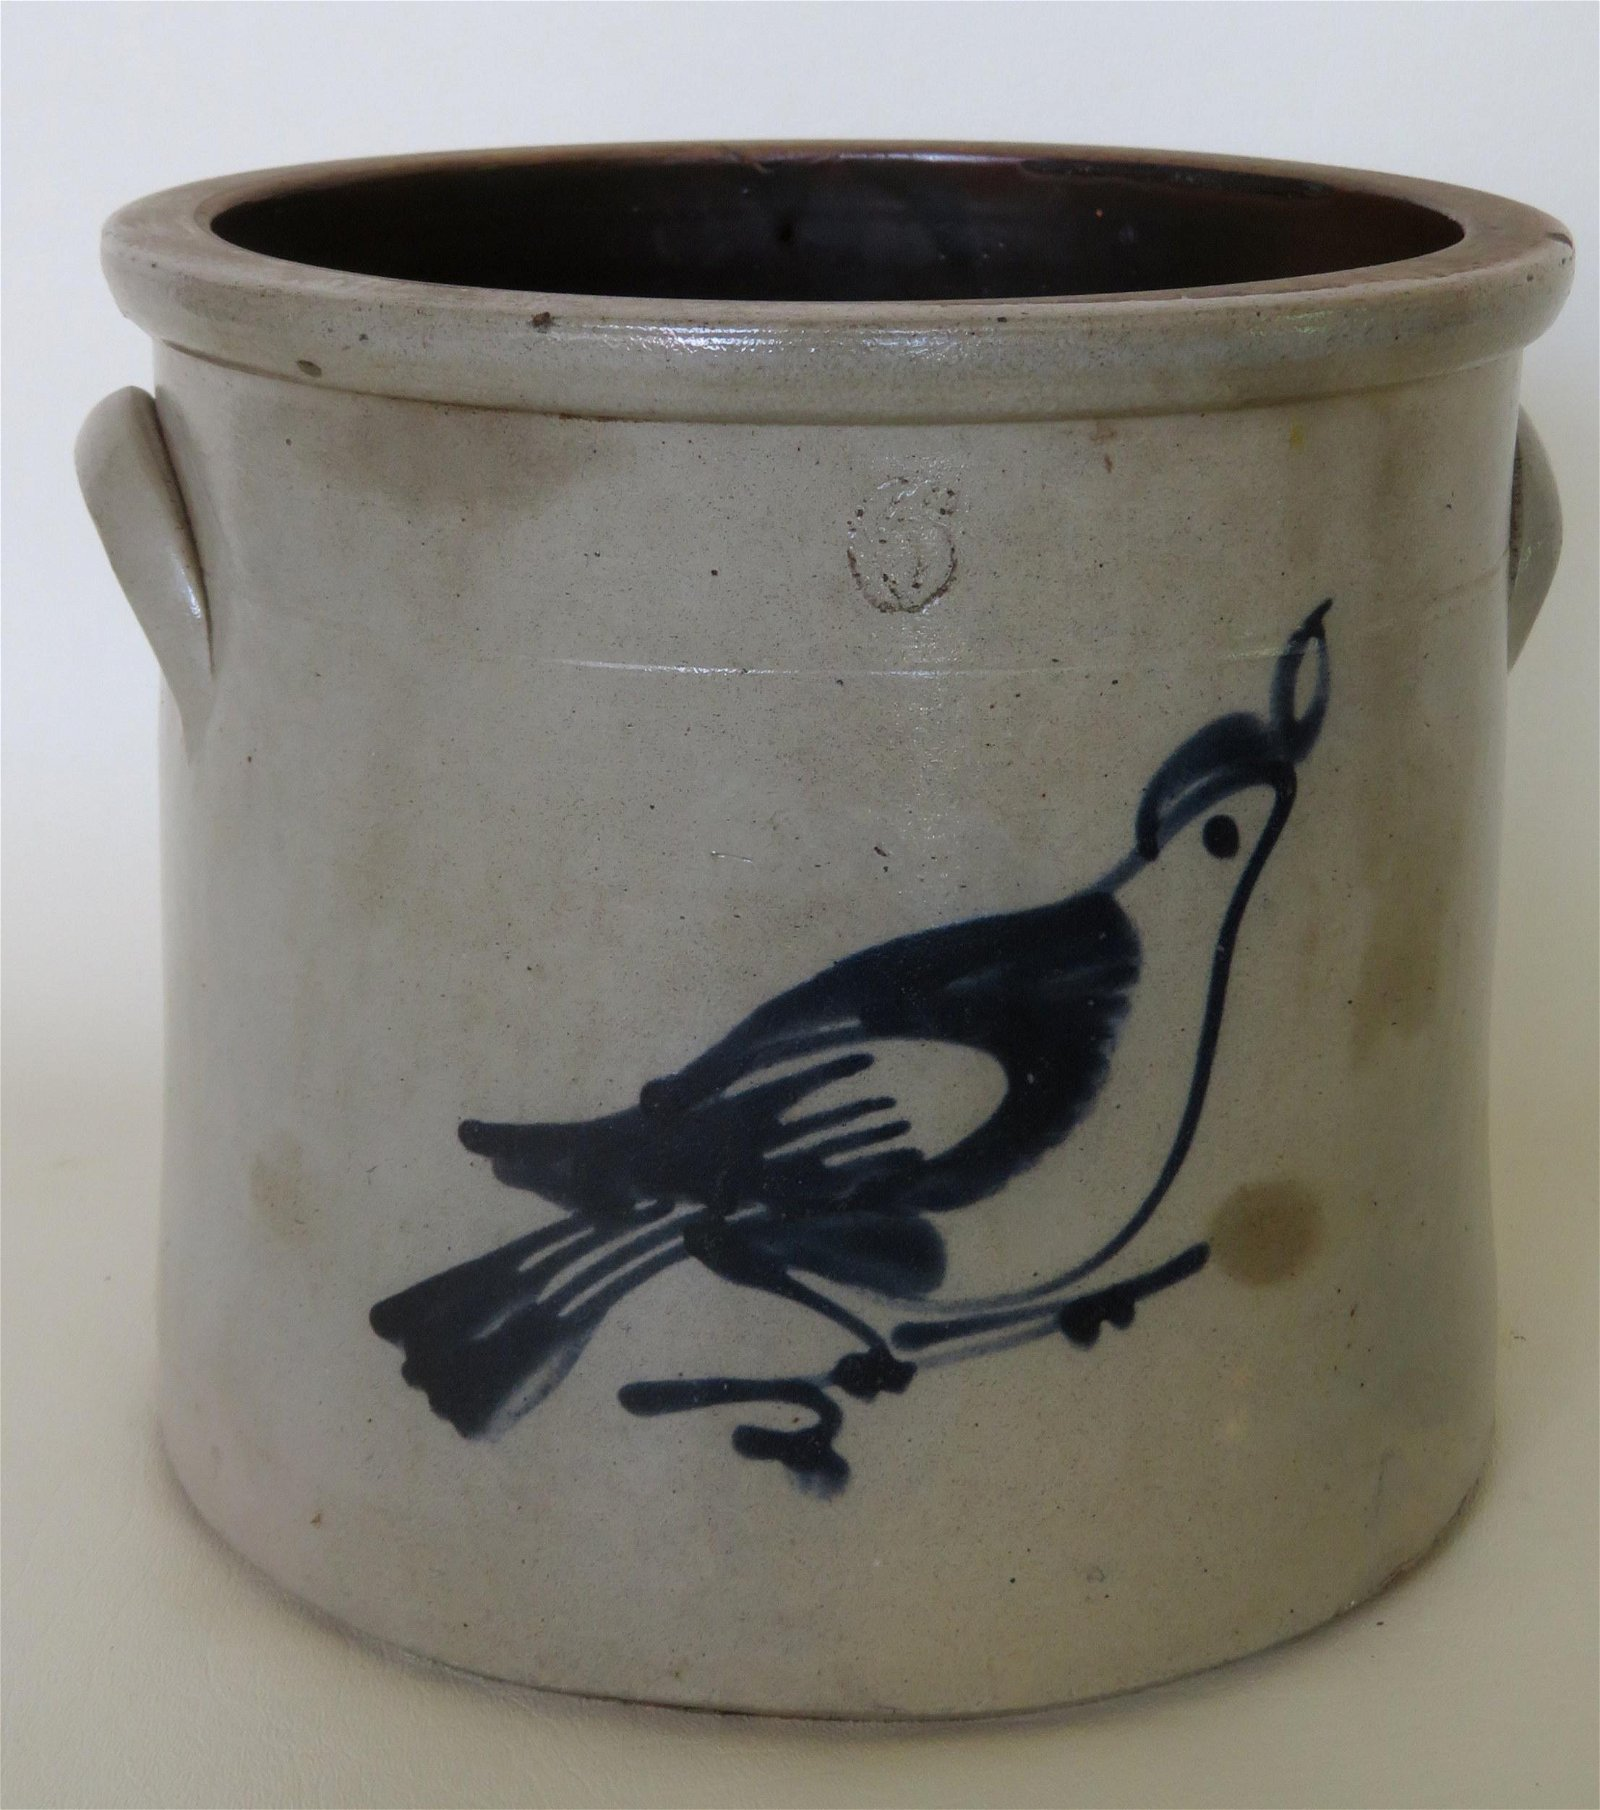 A stoneware crock decorated with a cobalt blue bird on